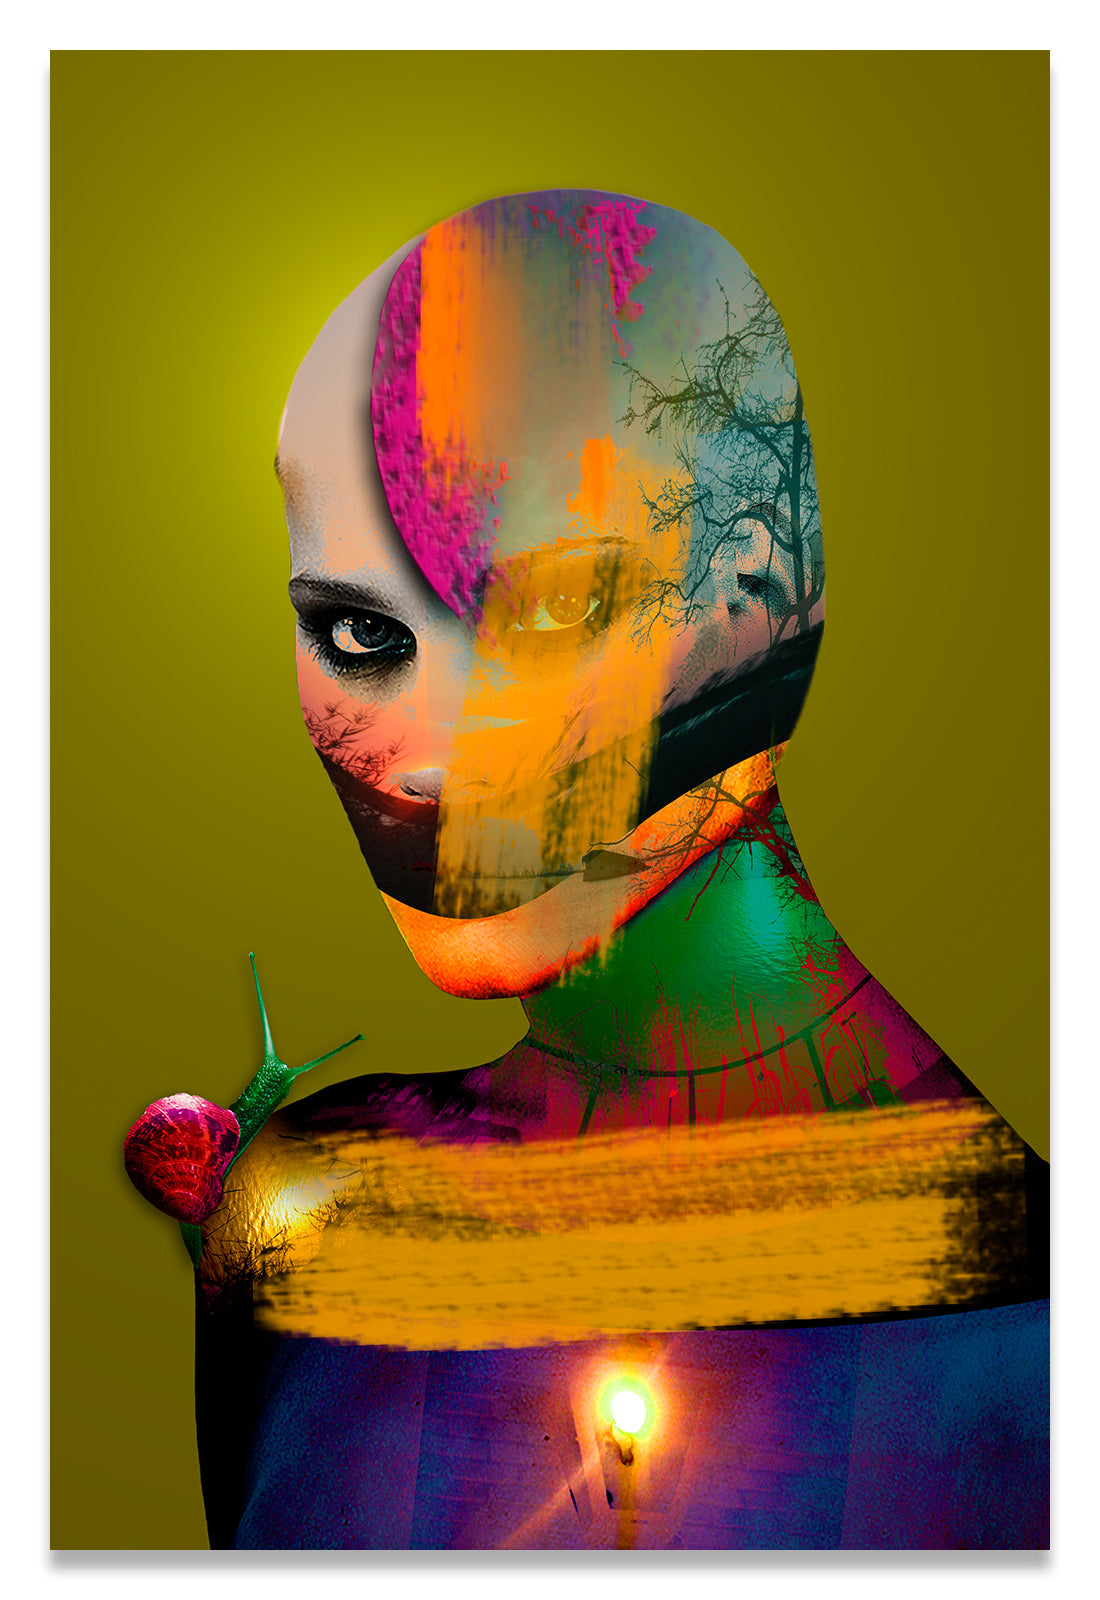 Bold Colored Portrait of a Bald Woman Covered in Paint with a Snail on her Shoulder.